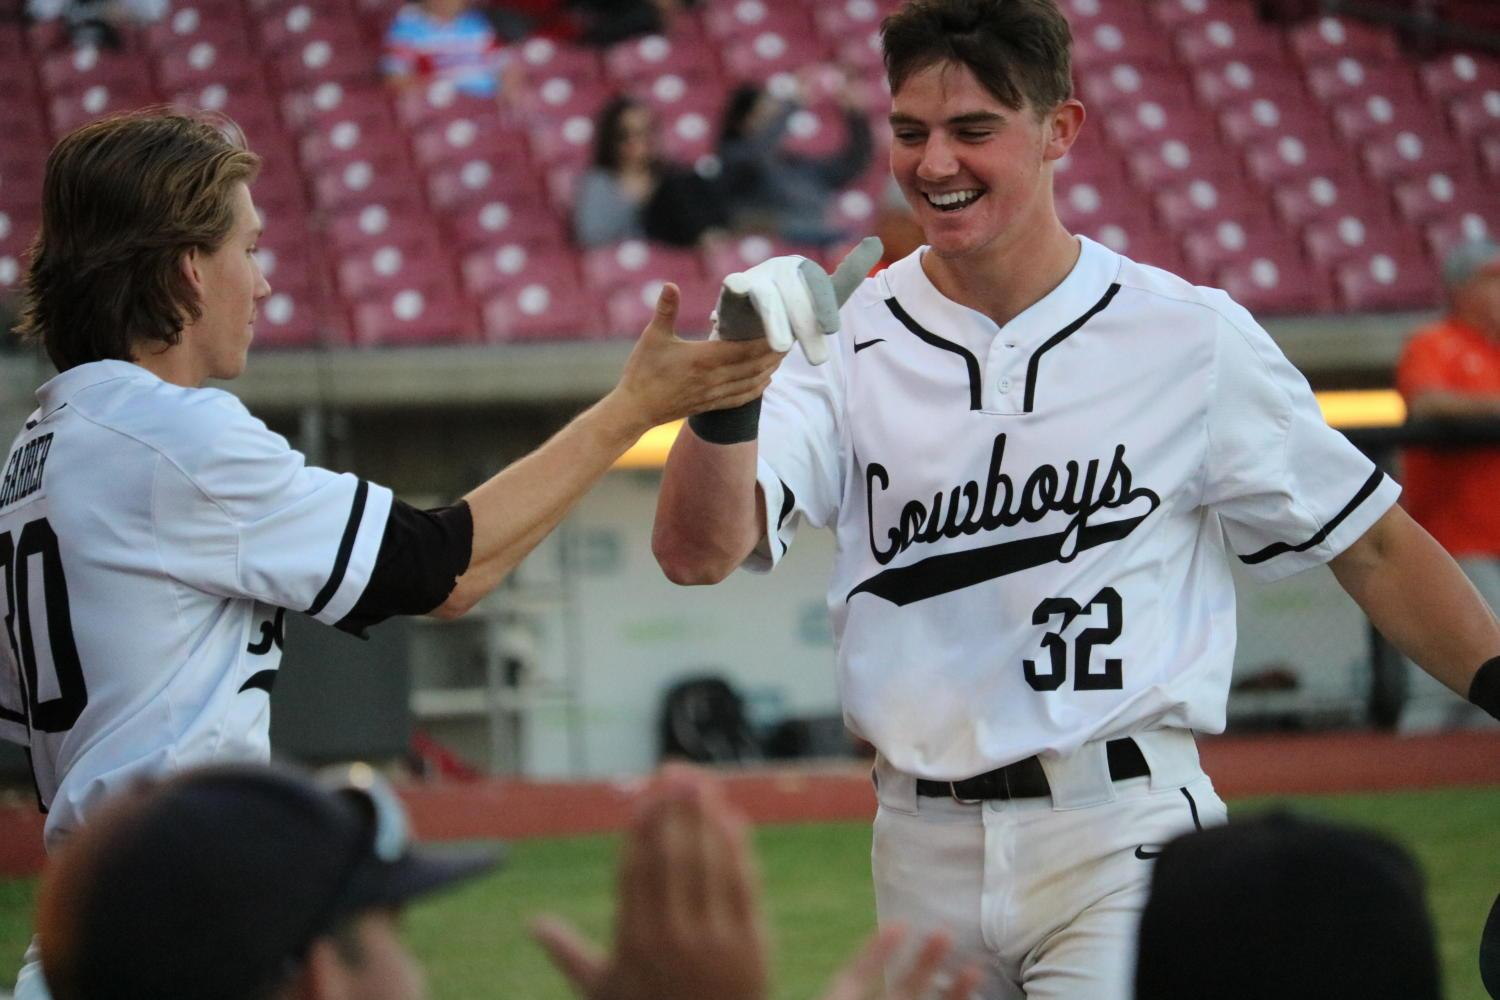 The Coppell High School varsity baseball team congratulates CHS senior Cody Masters after he scores the first run of Thursday night's game against Naaman Forest. The Coppell Cowboys defeated the Naaman Forest Rangers 13-0 at the AirHogs Stadium.